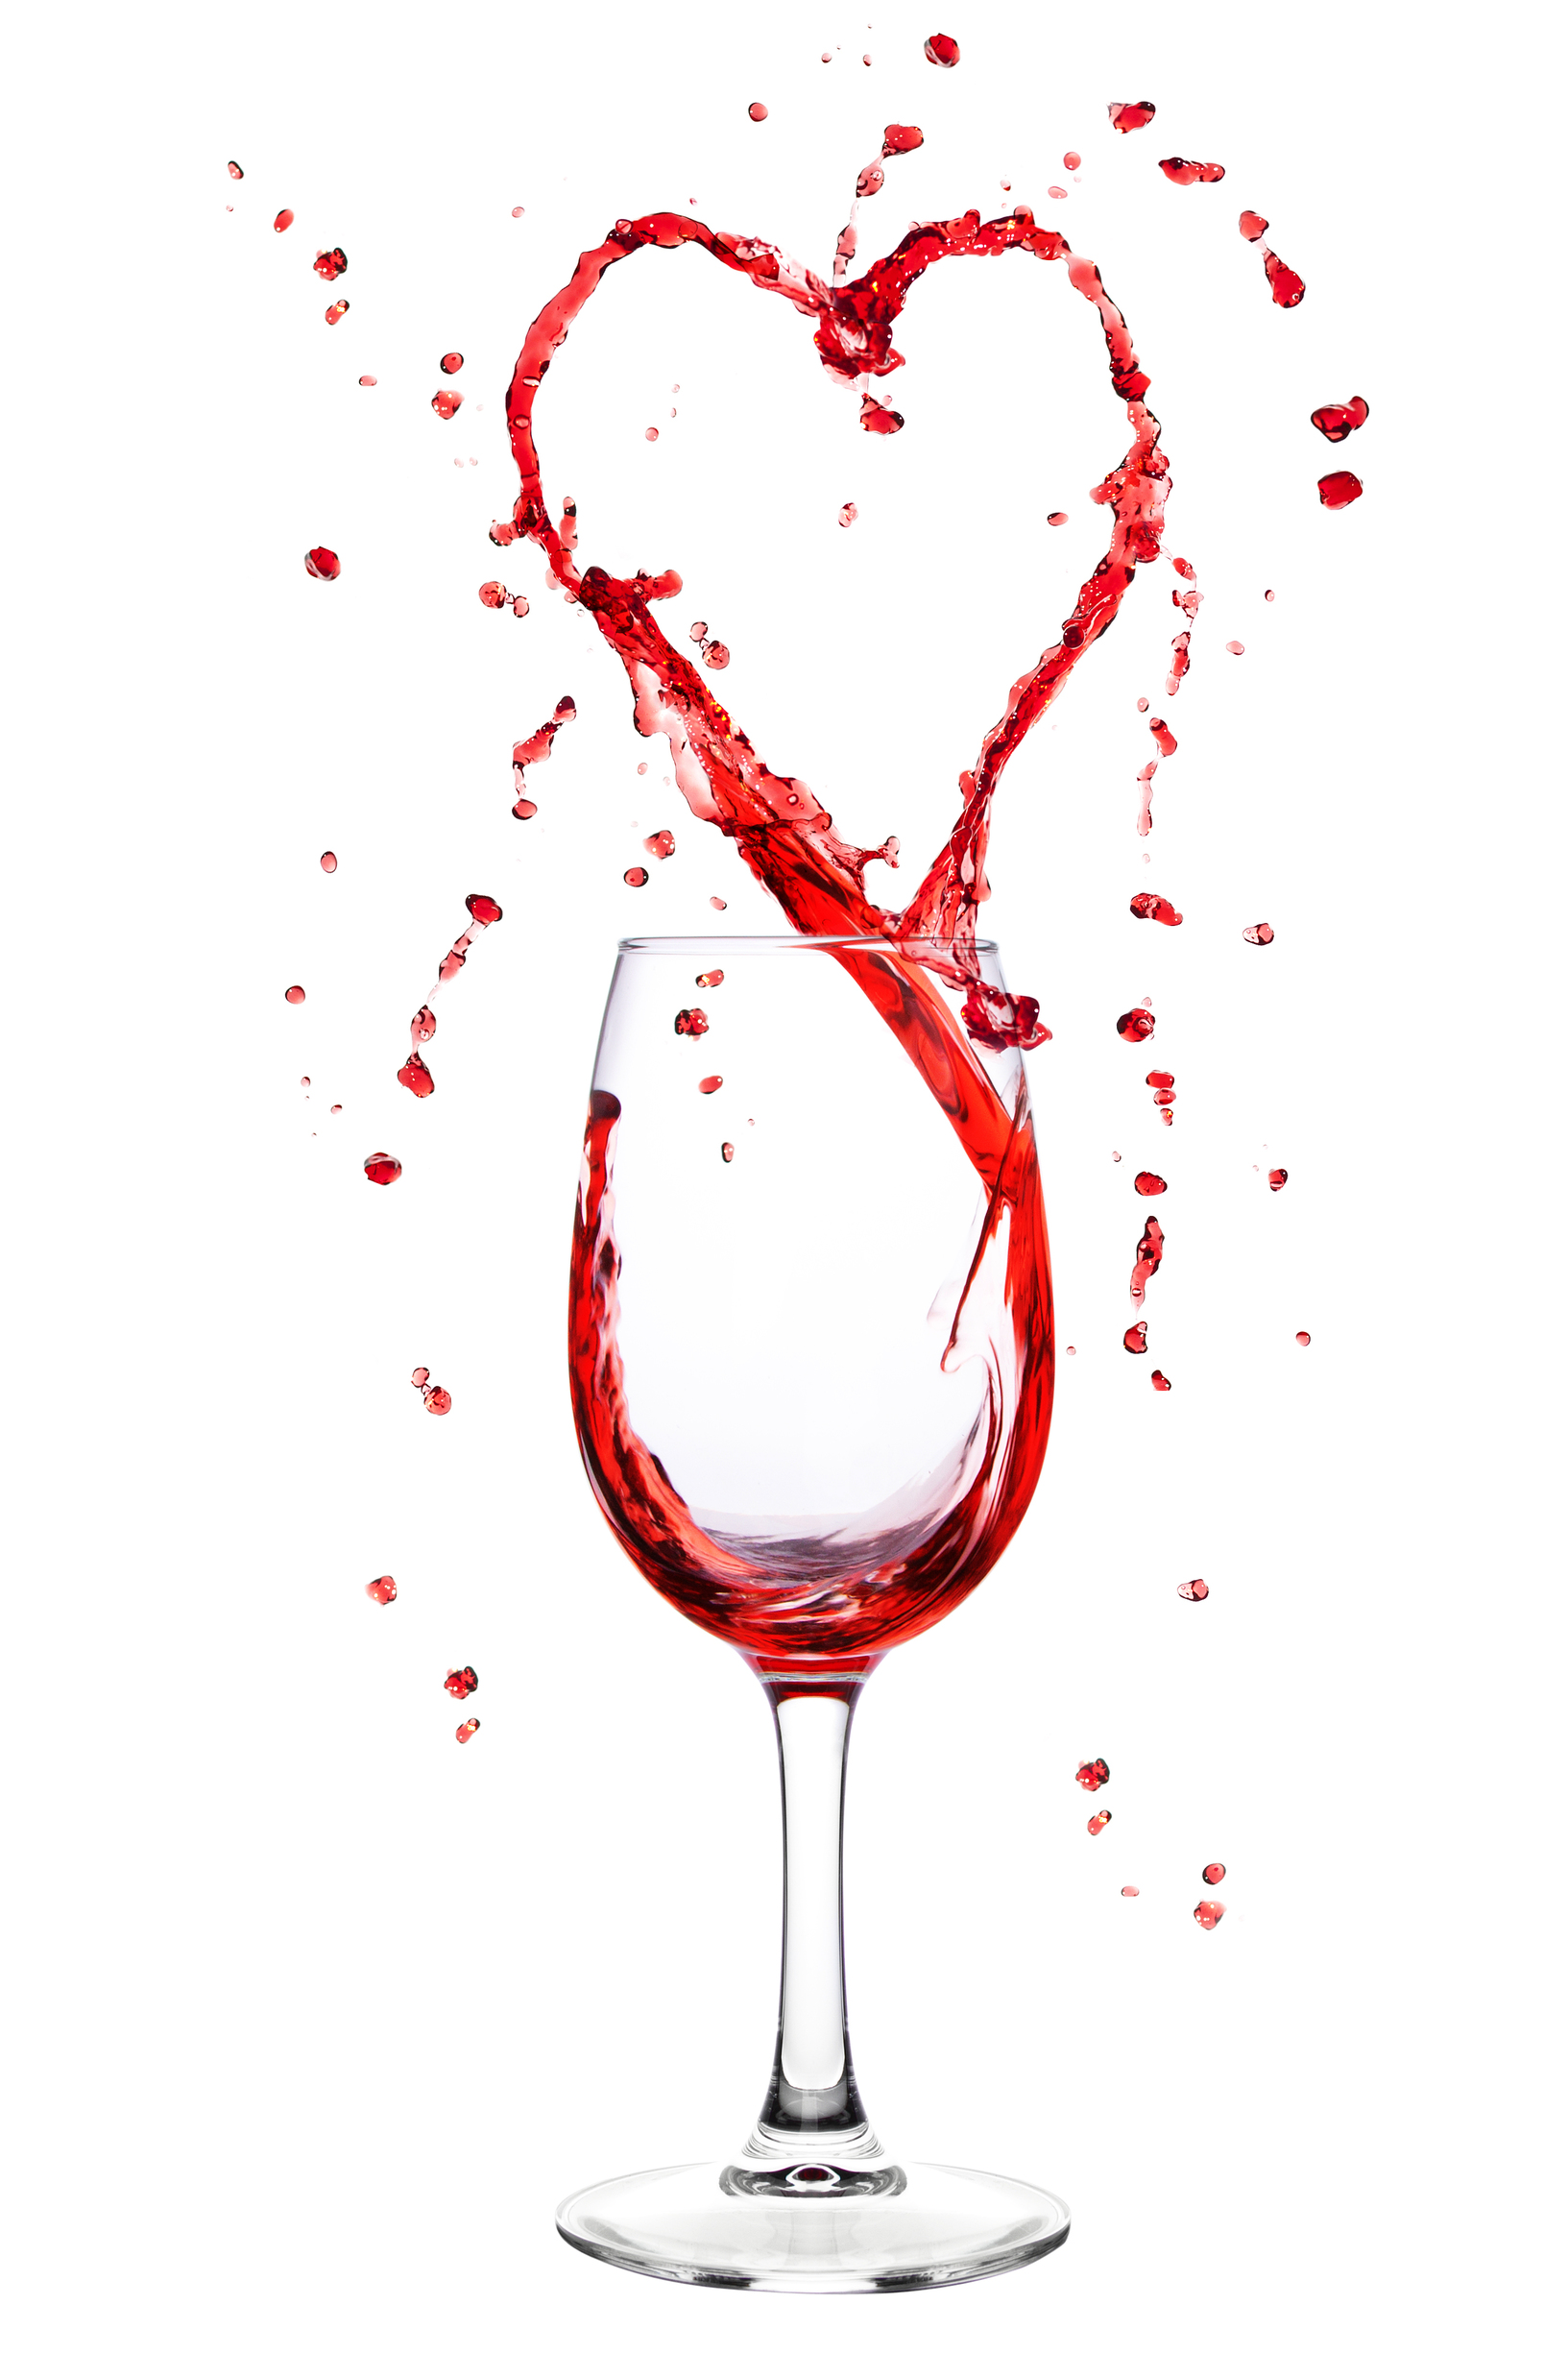 Red wine splashing from wineglass in heart shape